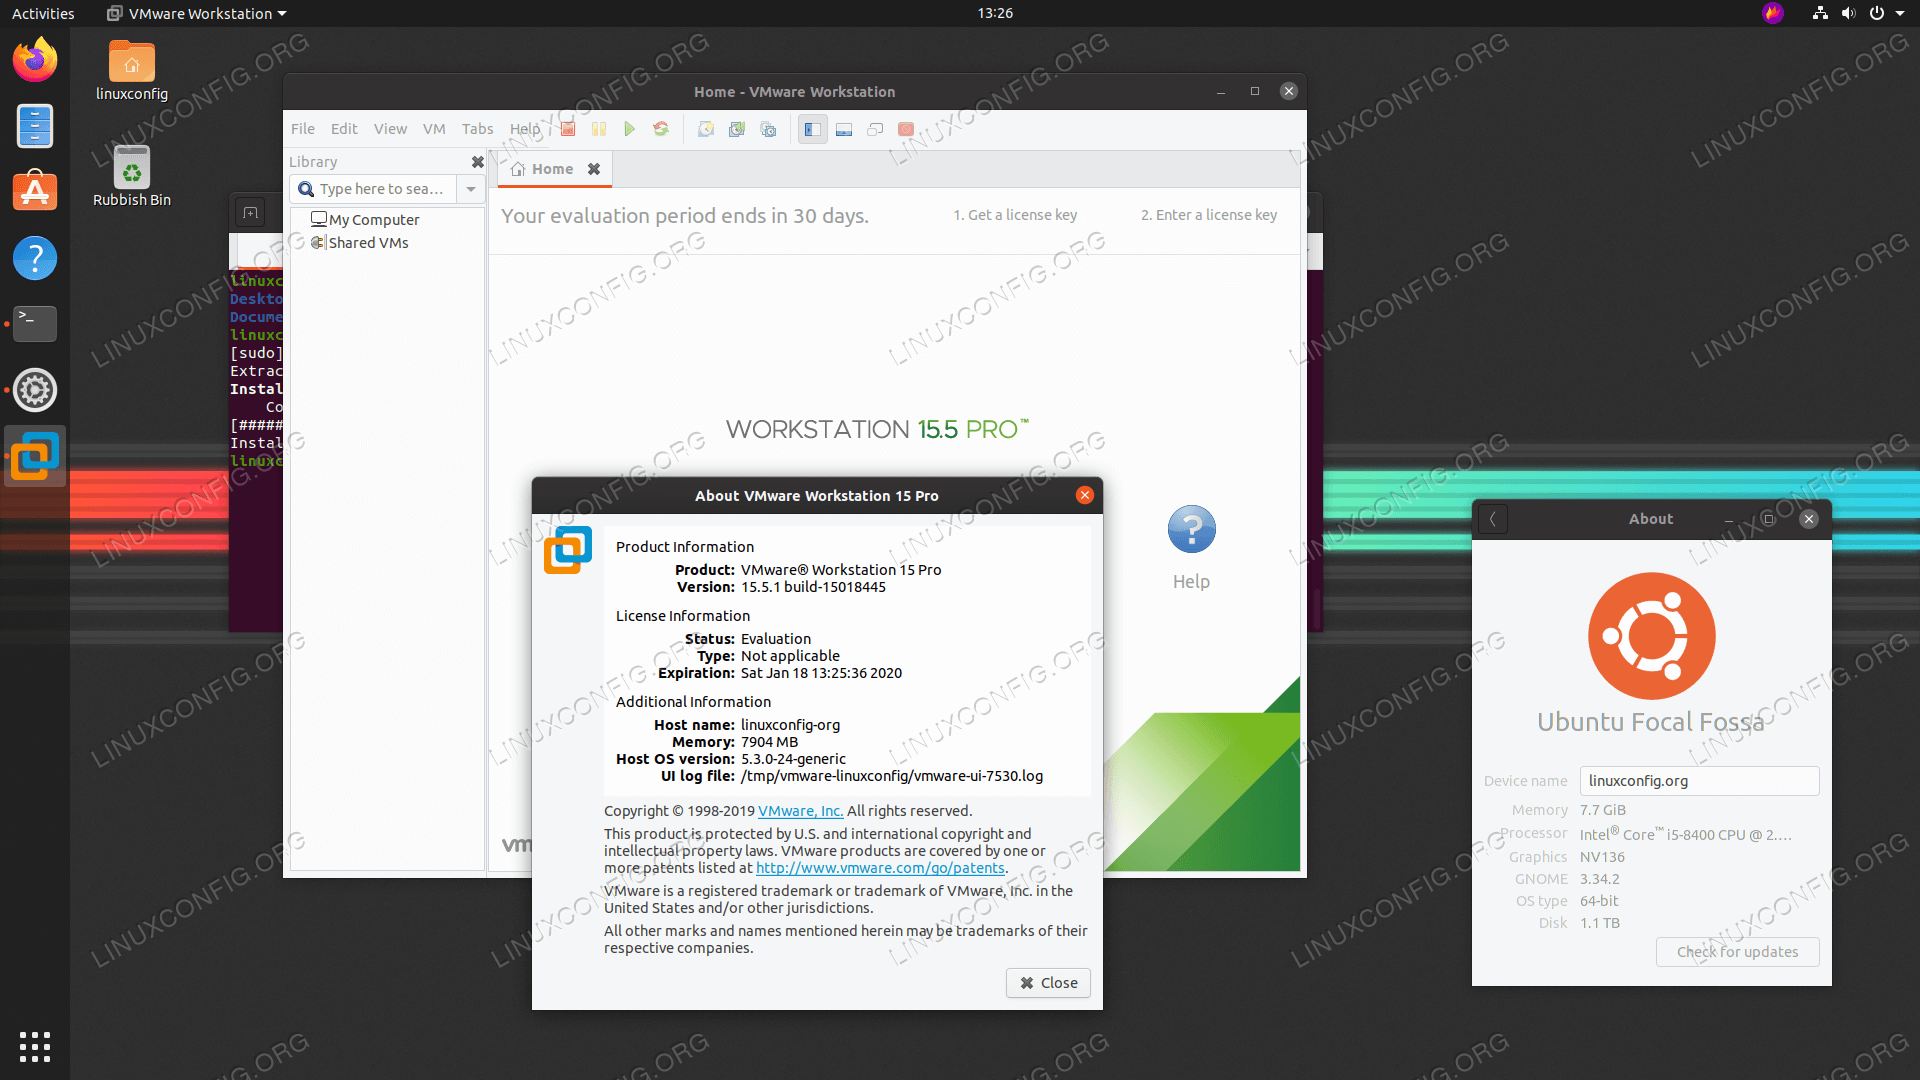 VMware Workstation PRO on Ubuntu 20.04 Focal Fossa Linux